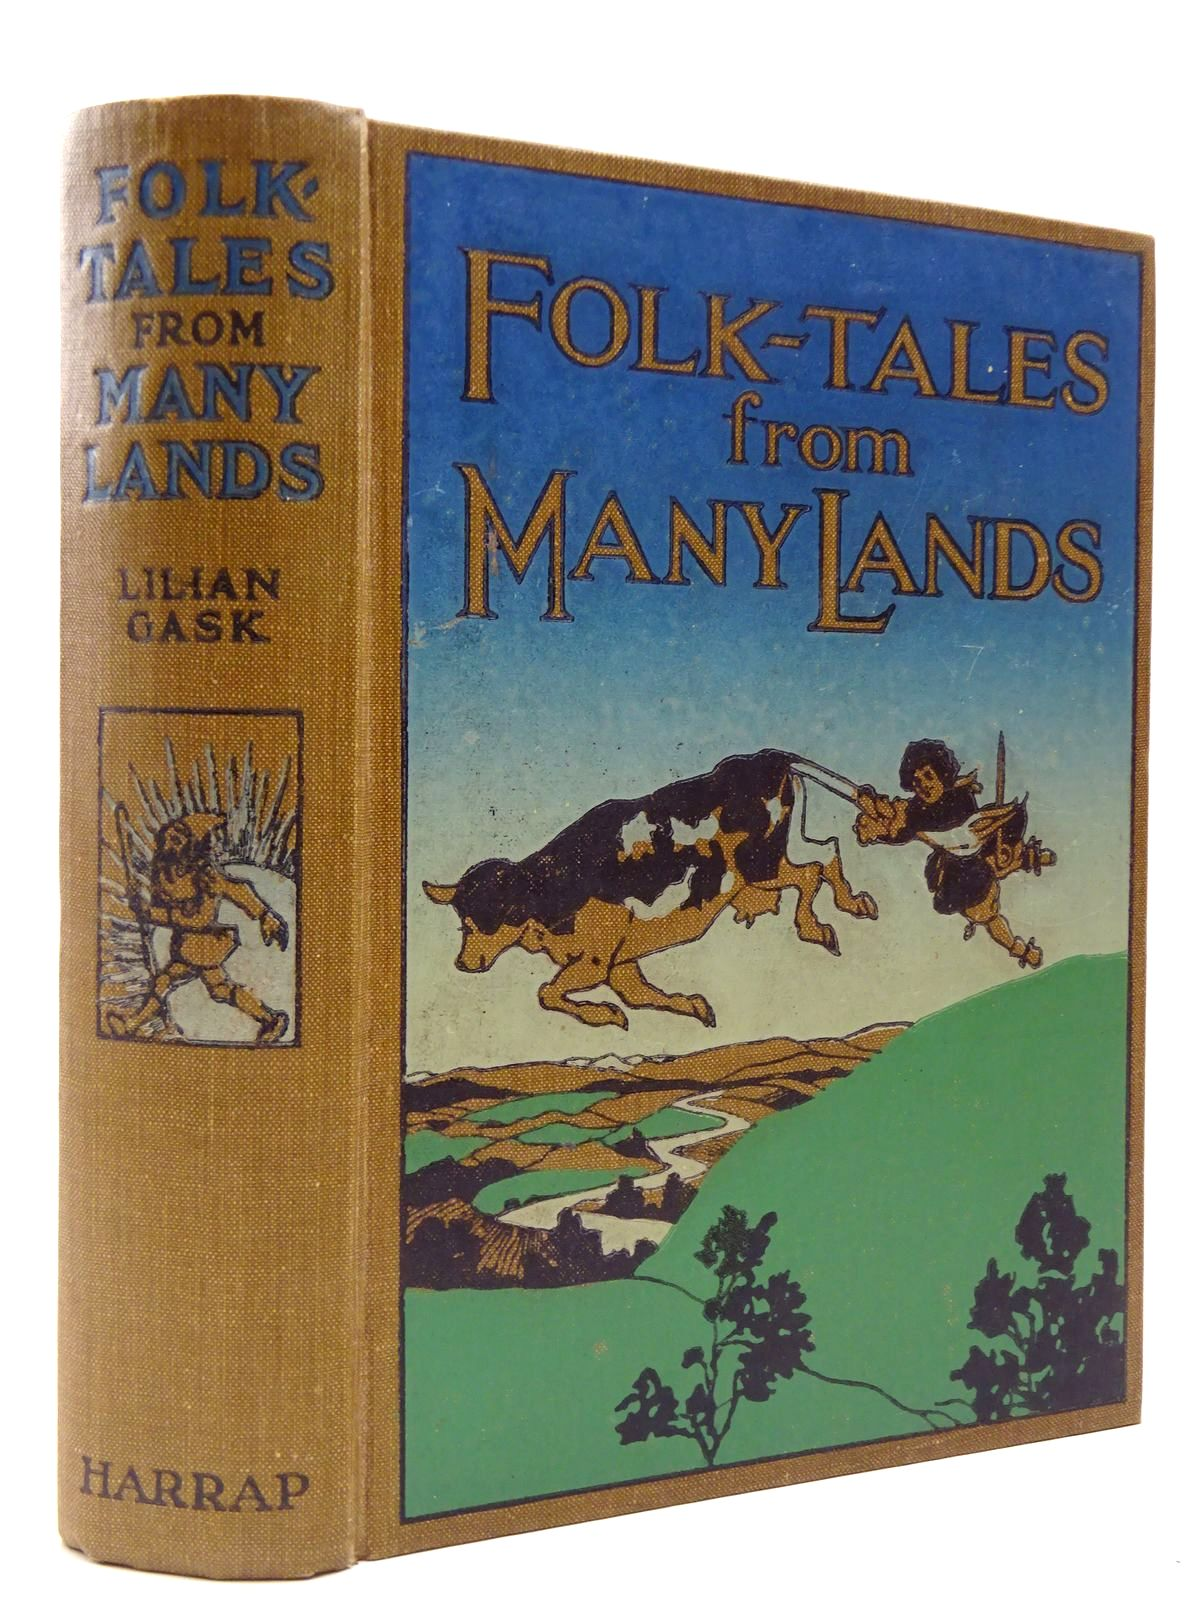 Photo of FOLK TALES FROM MANY LANDS written by Gask, Lilian illustrated by Pogany, Willy published by George G. Harrap & Co. Ltd. (STOCK CODE: 2129972)  for sale by Stella & Rose's Books